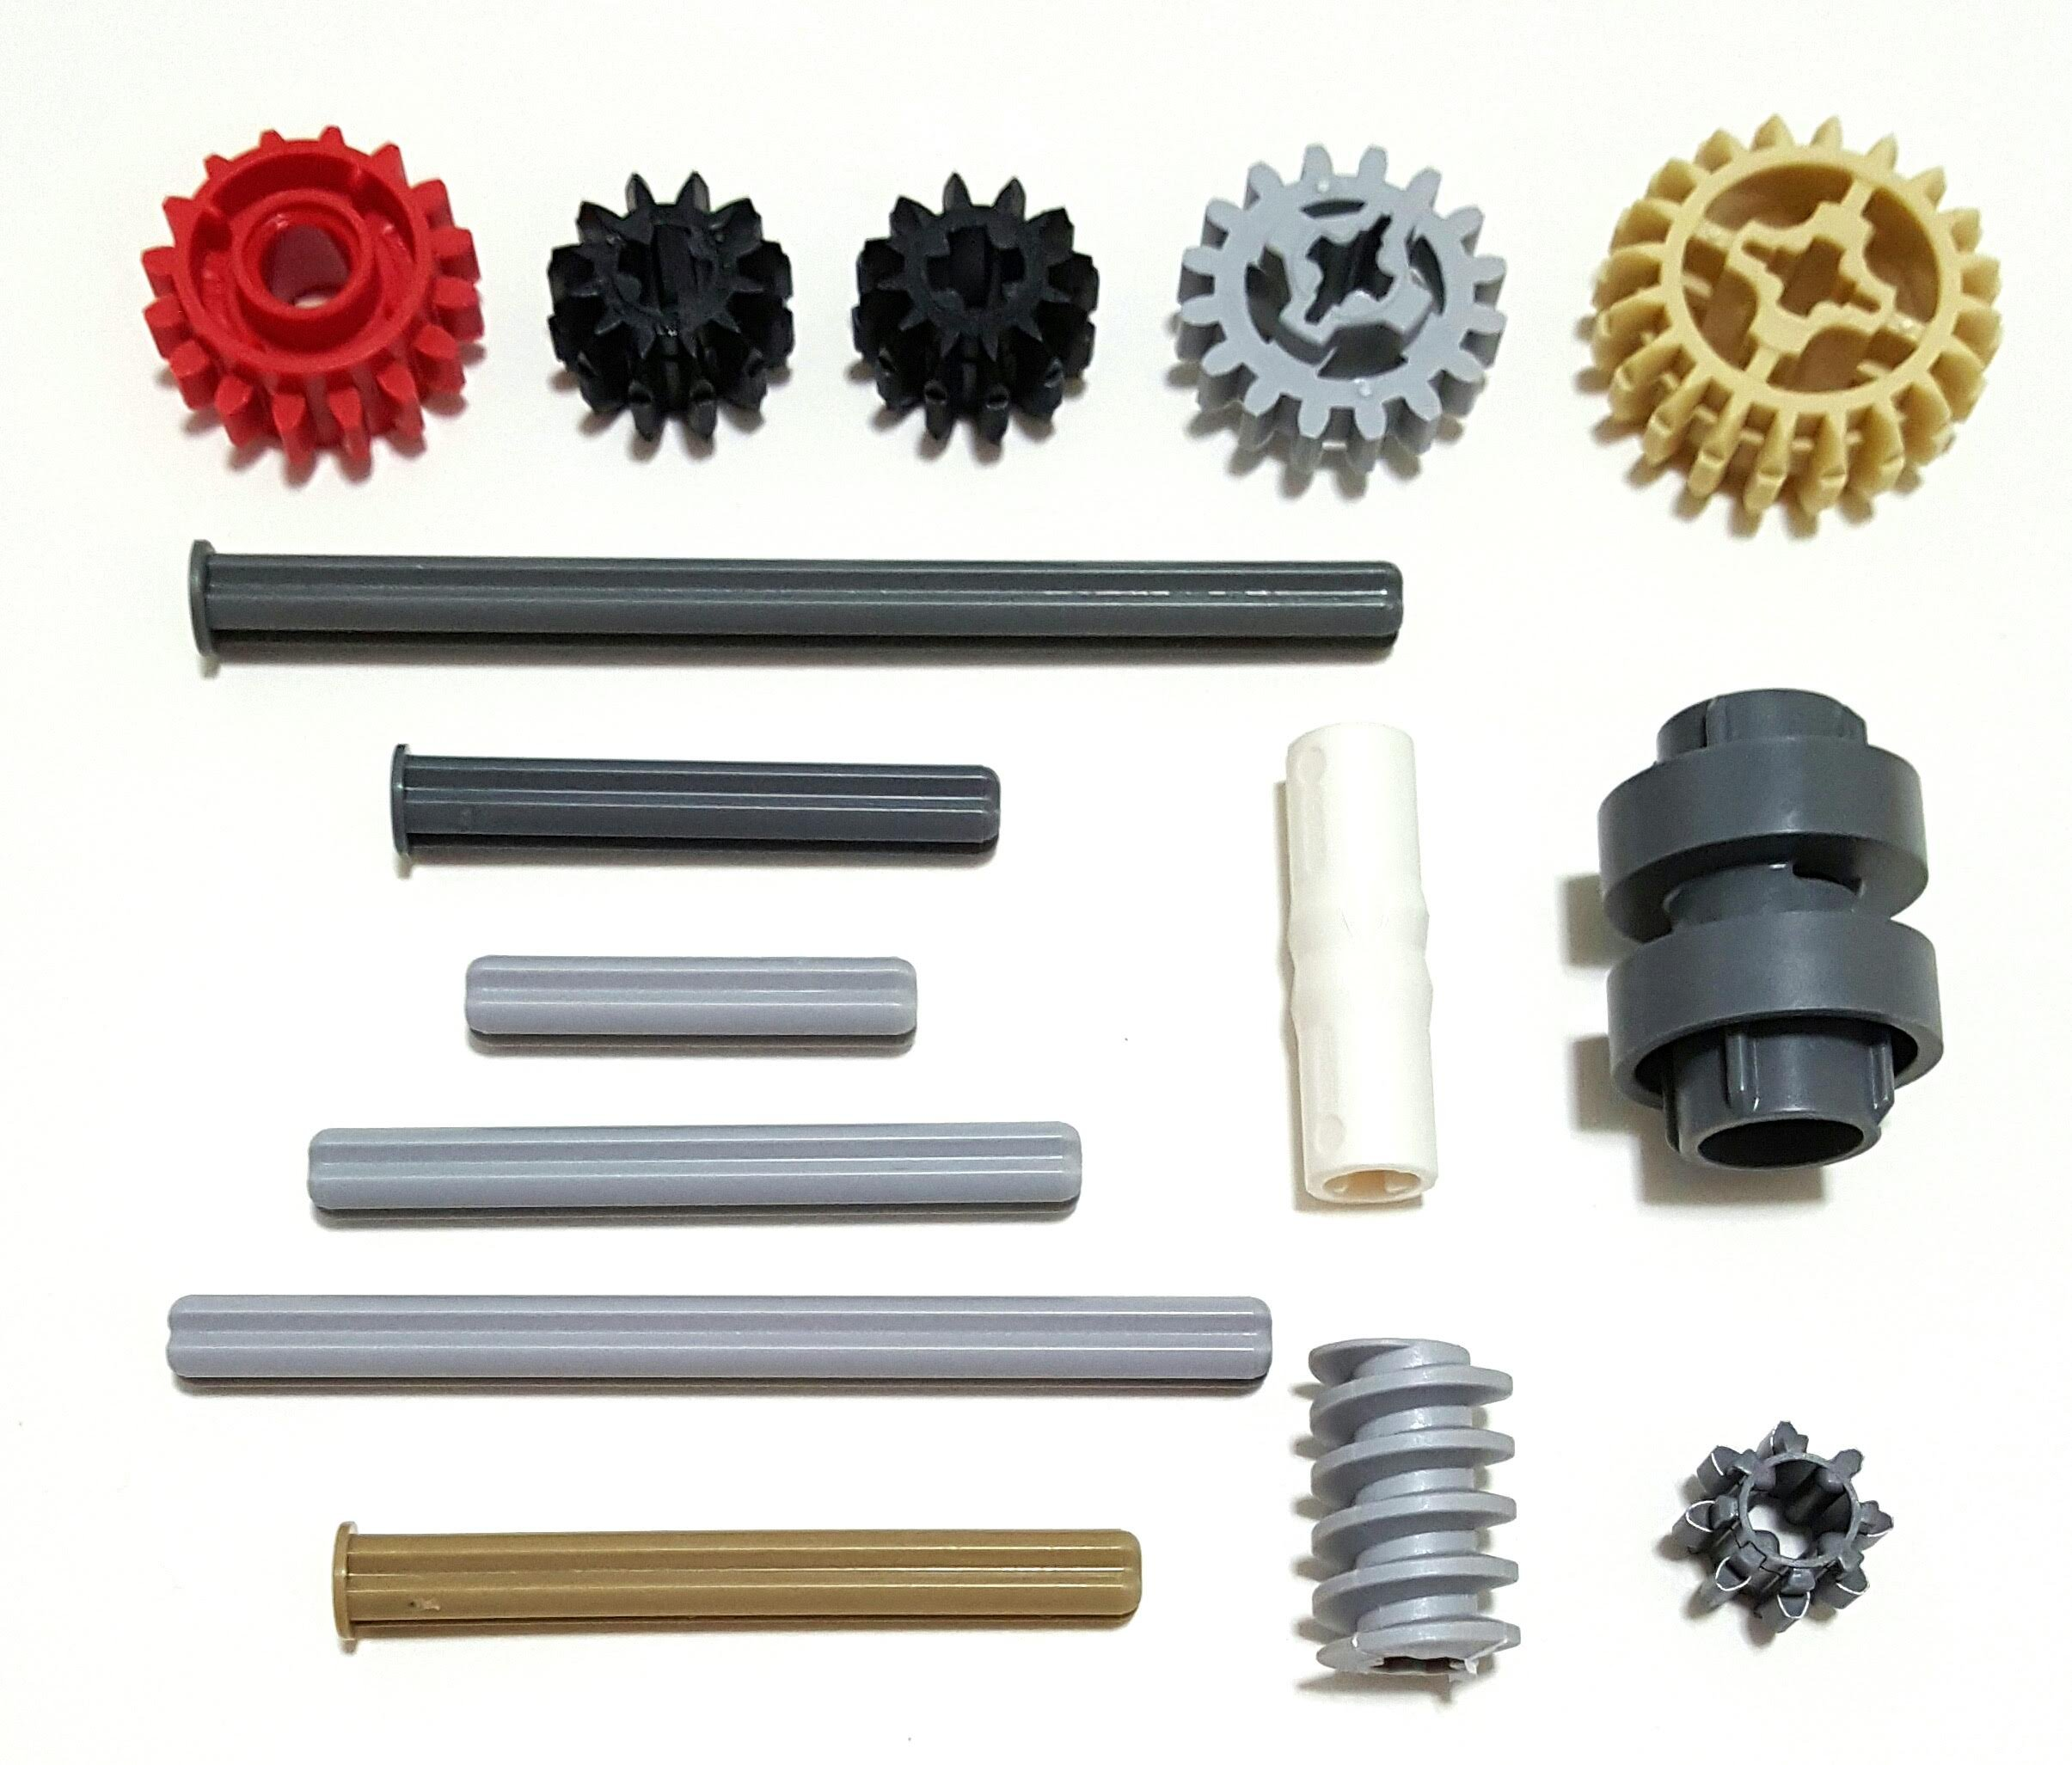 Cheap Lego Gears, find Lego Gears deals on line at Alibaba com